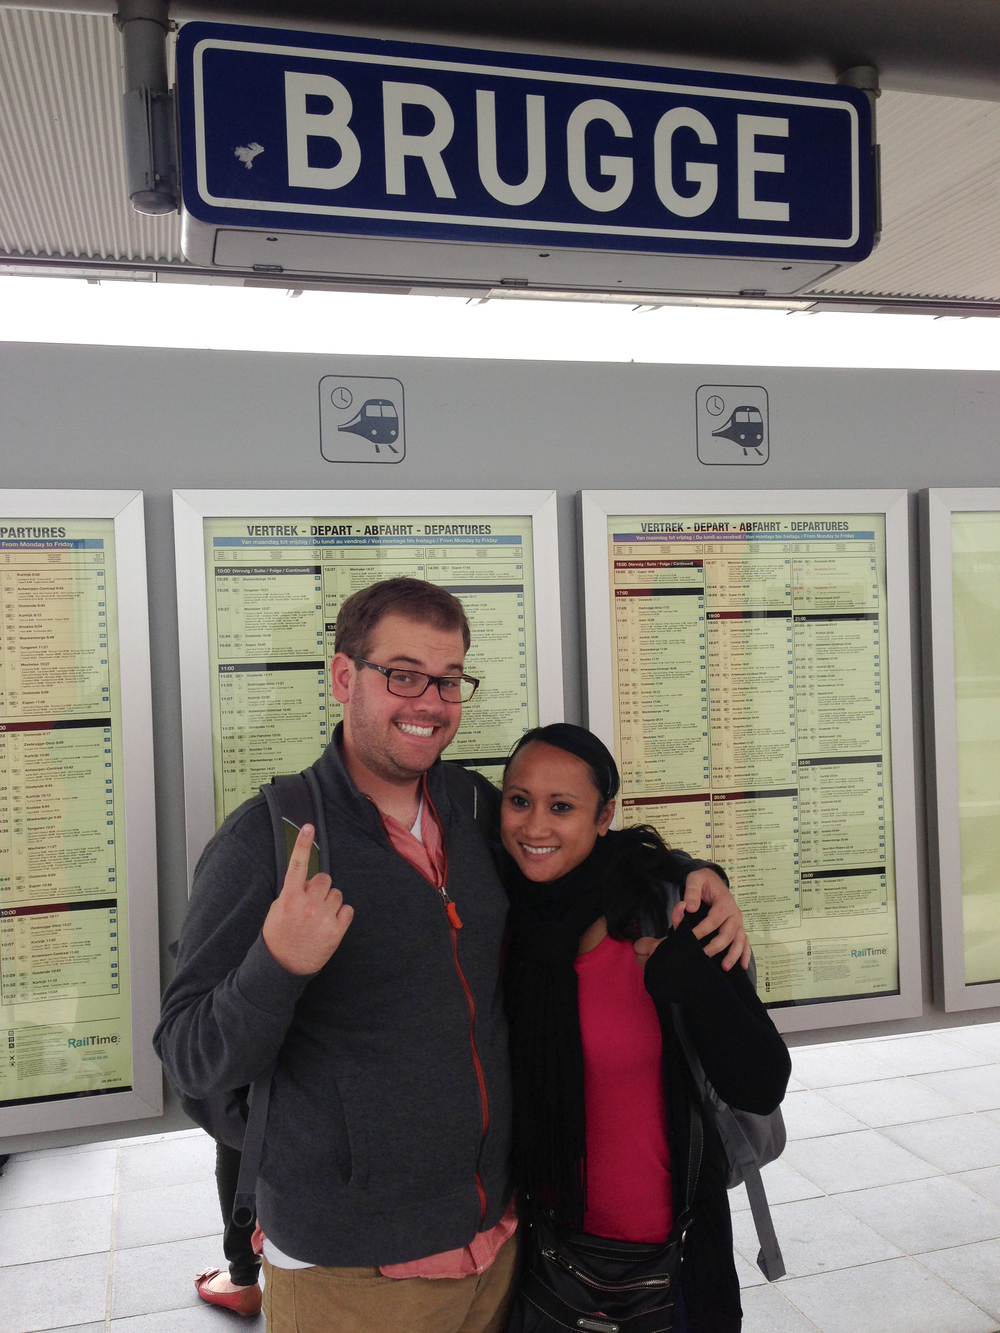 Arrival in the Bruges train station after 3 hours and two trains!